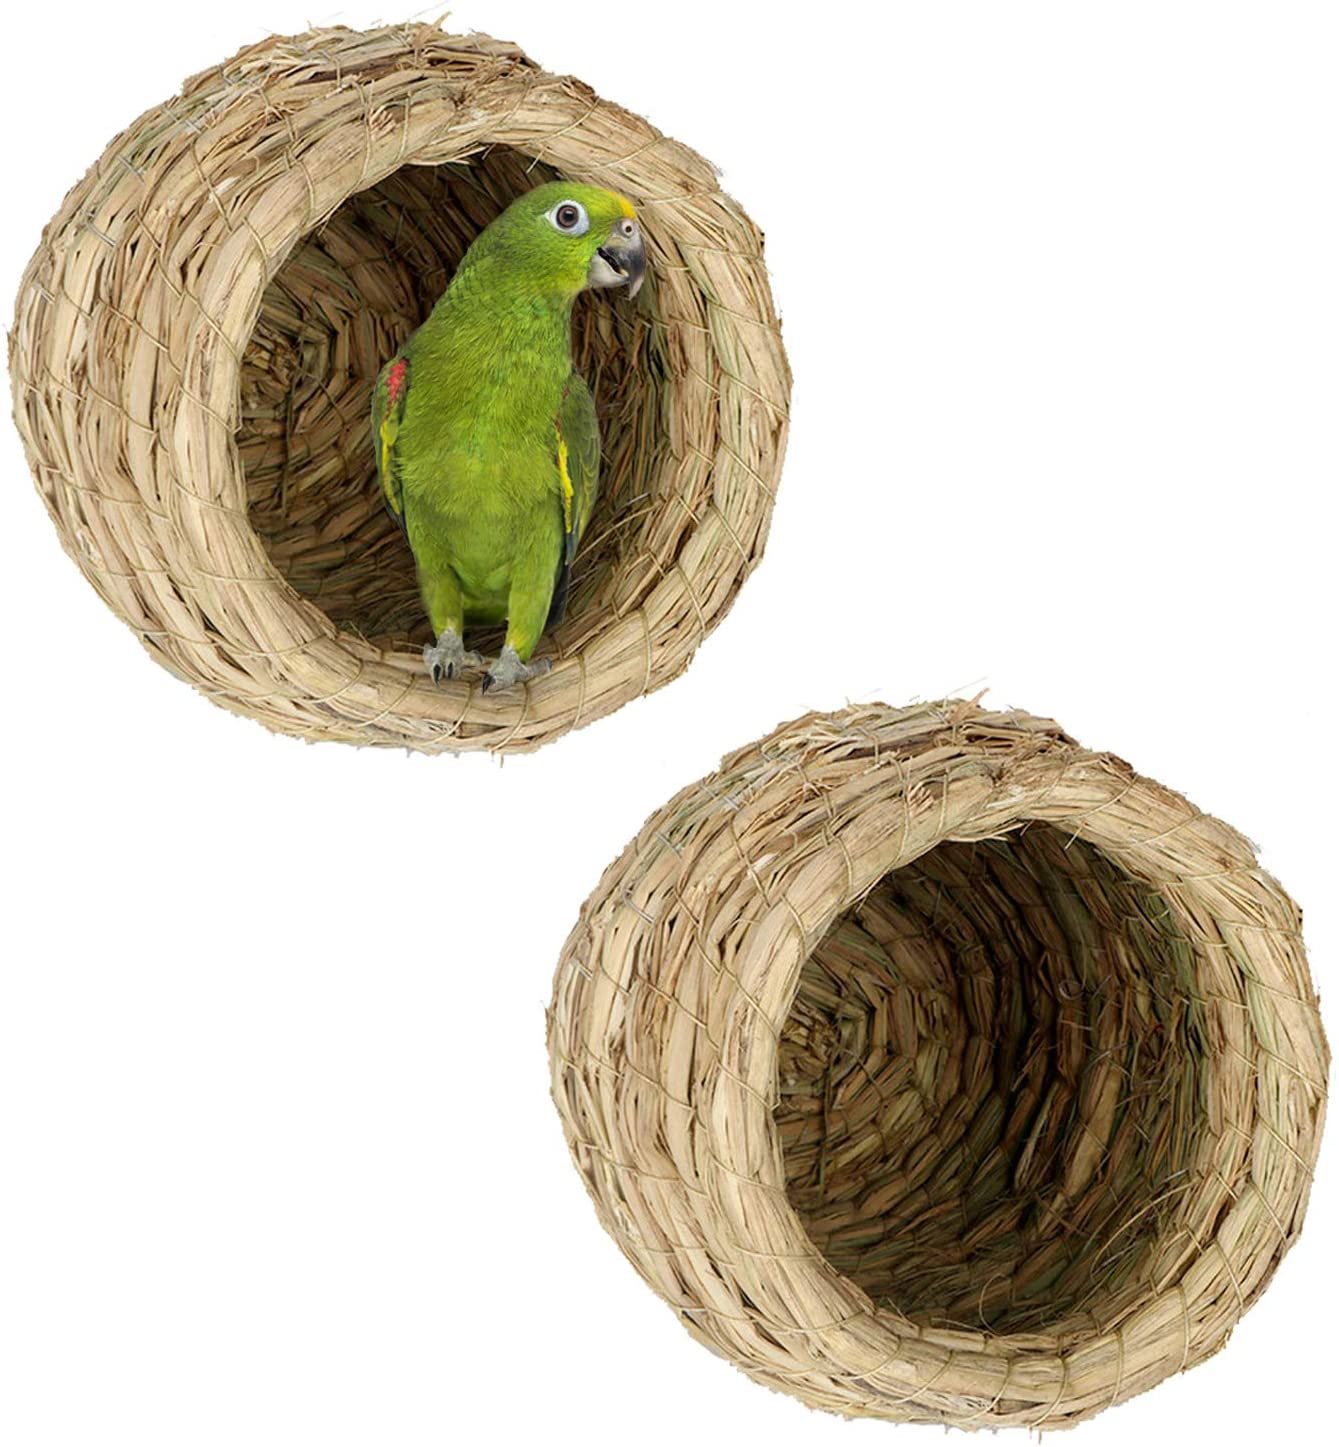 Hamiledyi Max 49% OFF Straw Simulation Bird Nest Fiber Natural Cage for Max 80% OFF